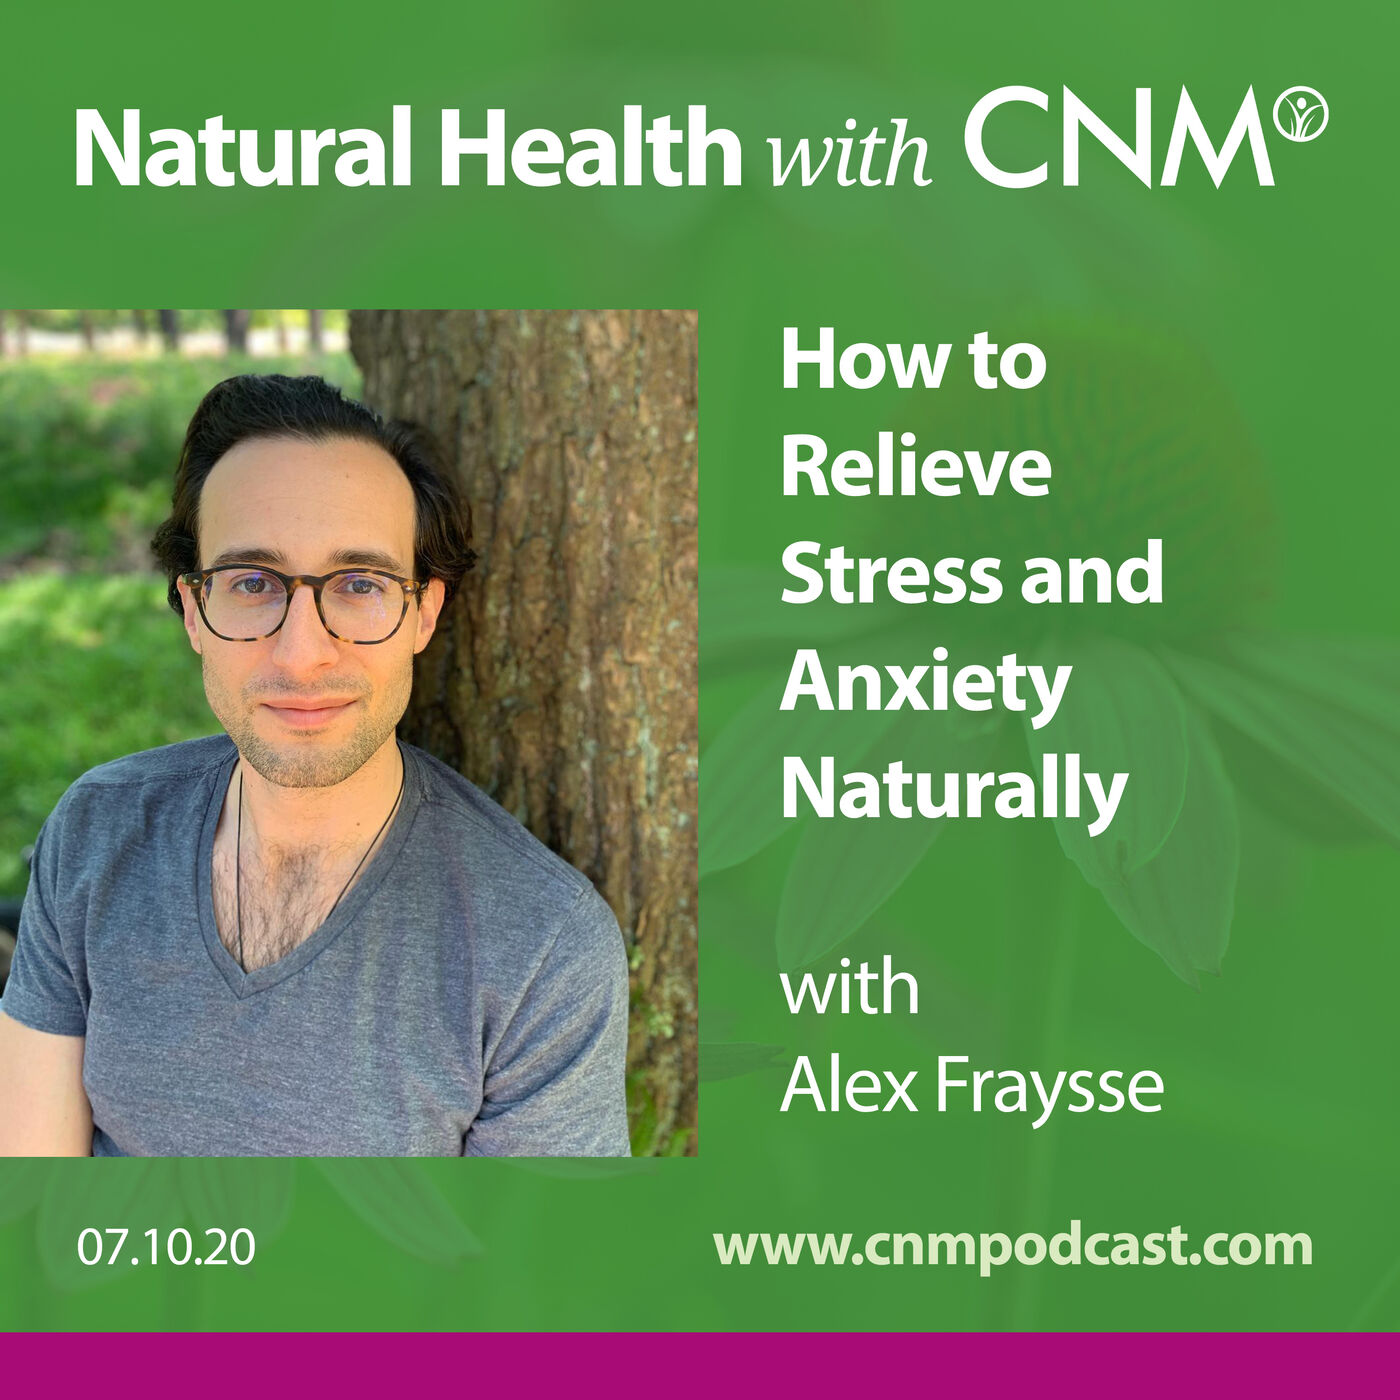 How to Relieve Stress & Anxiety Naturally with Alex Fraysse